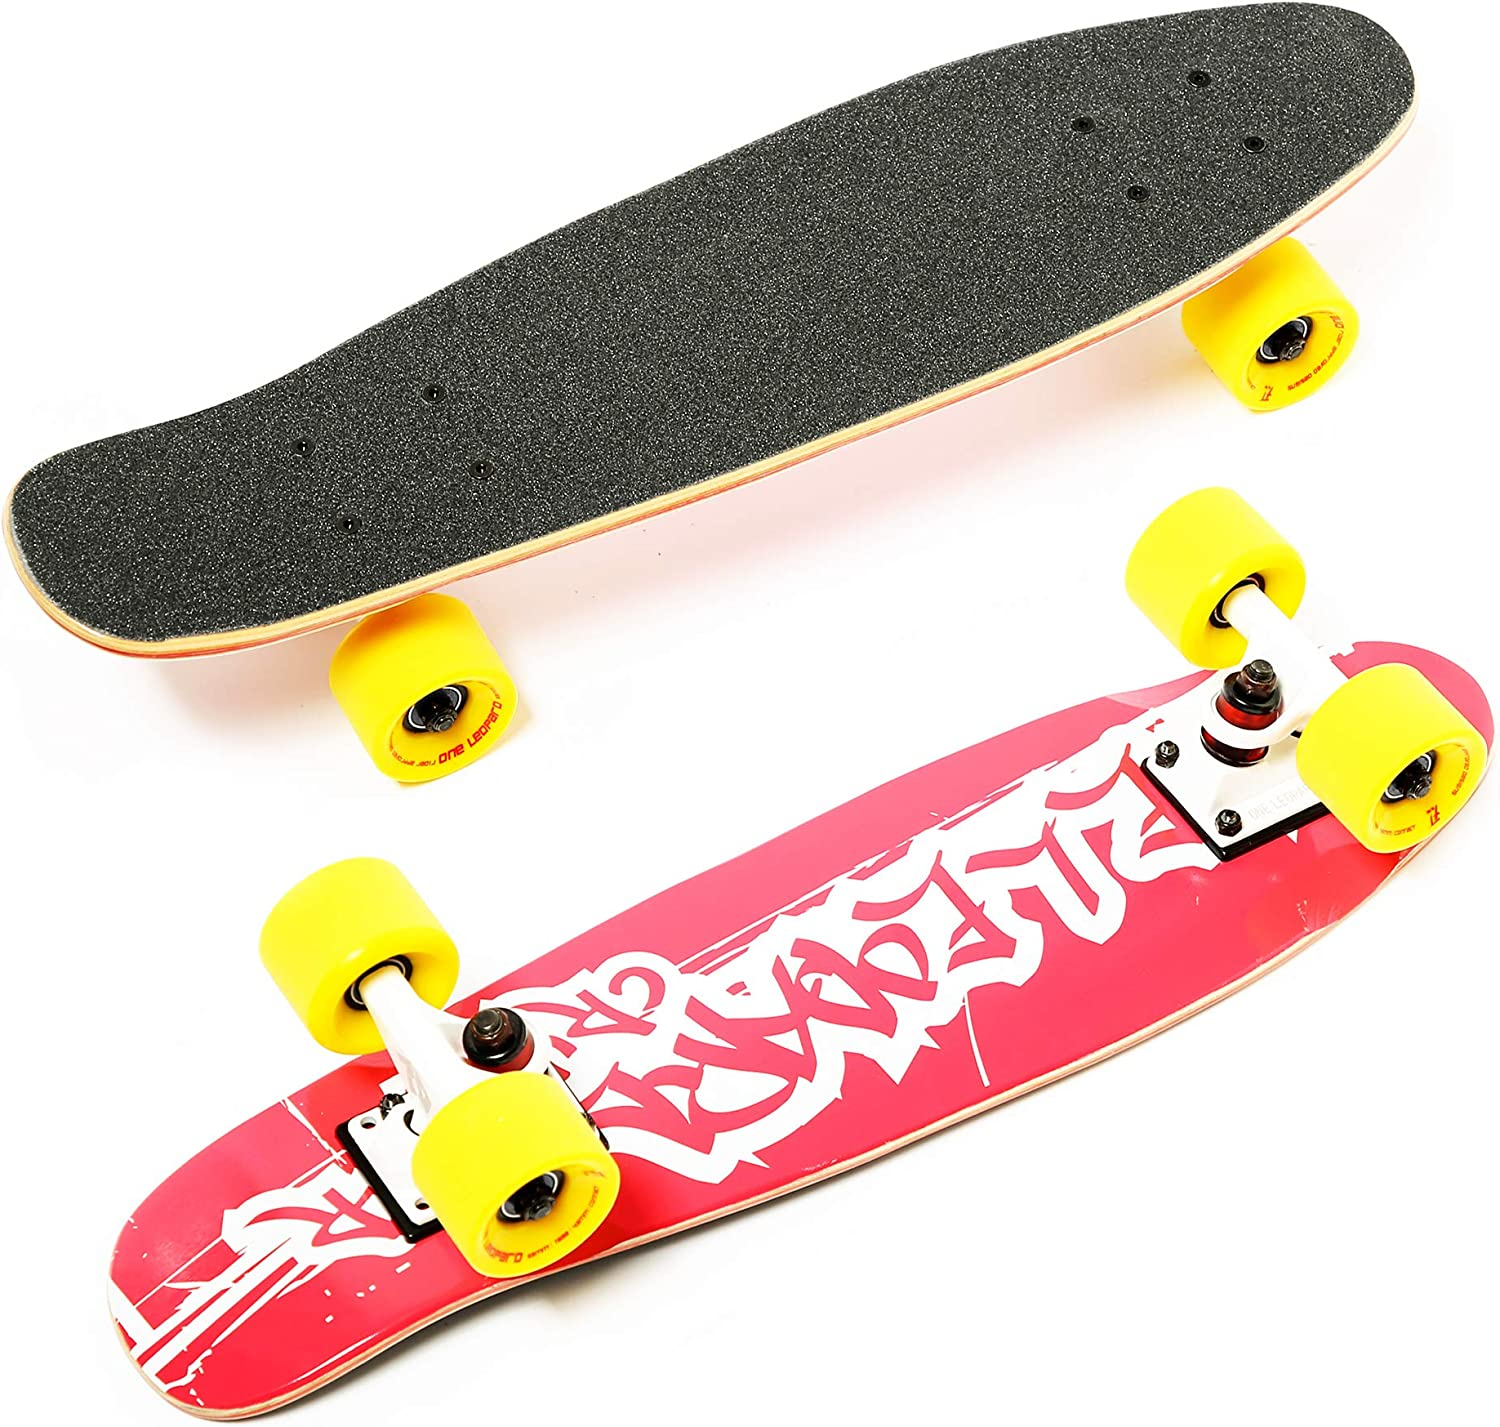 Battleship 23 Inch Complete Skateboard for Kids Teens /& Adults One Leopard Mini Cruiser Skateboard Resin 7 PLY Canadian Hard Rock Maple Kicktail Deck Concave Trick Skateboard T-Tool /& Skateboard Stickers /& Carry Bag Included PU Wheels w//o LED Light